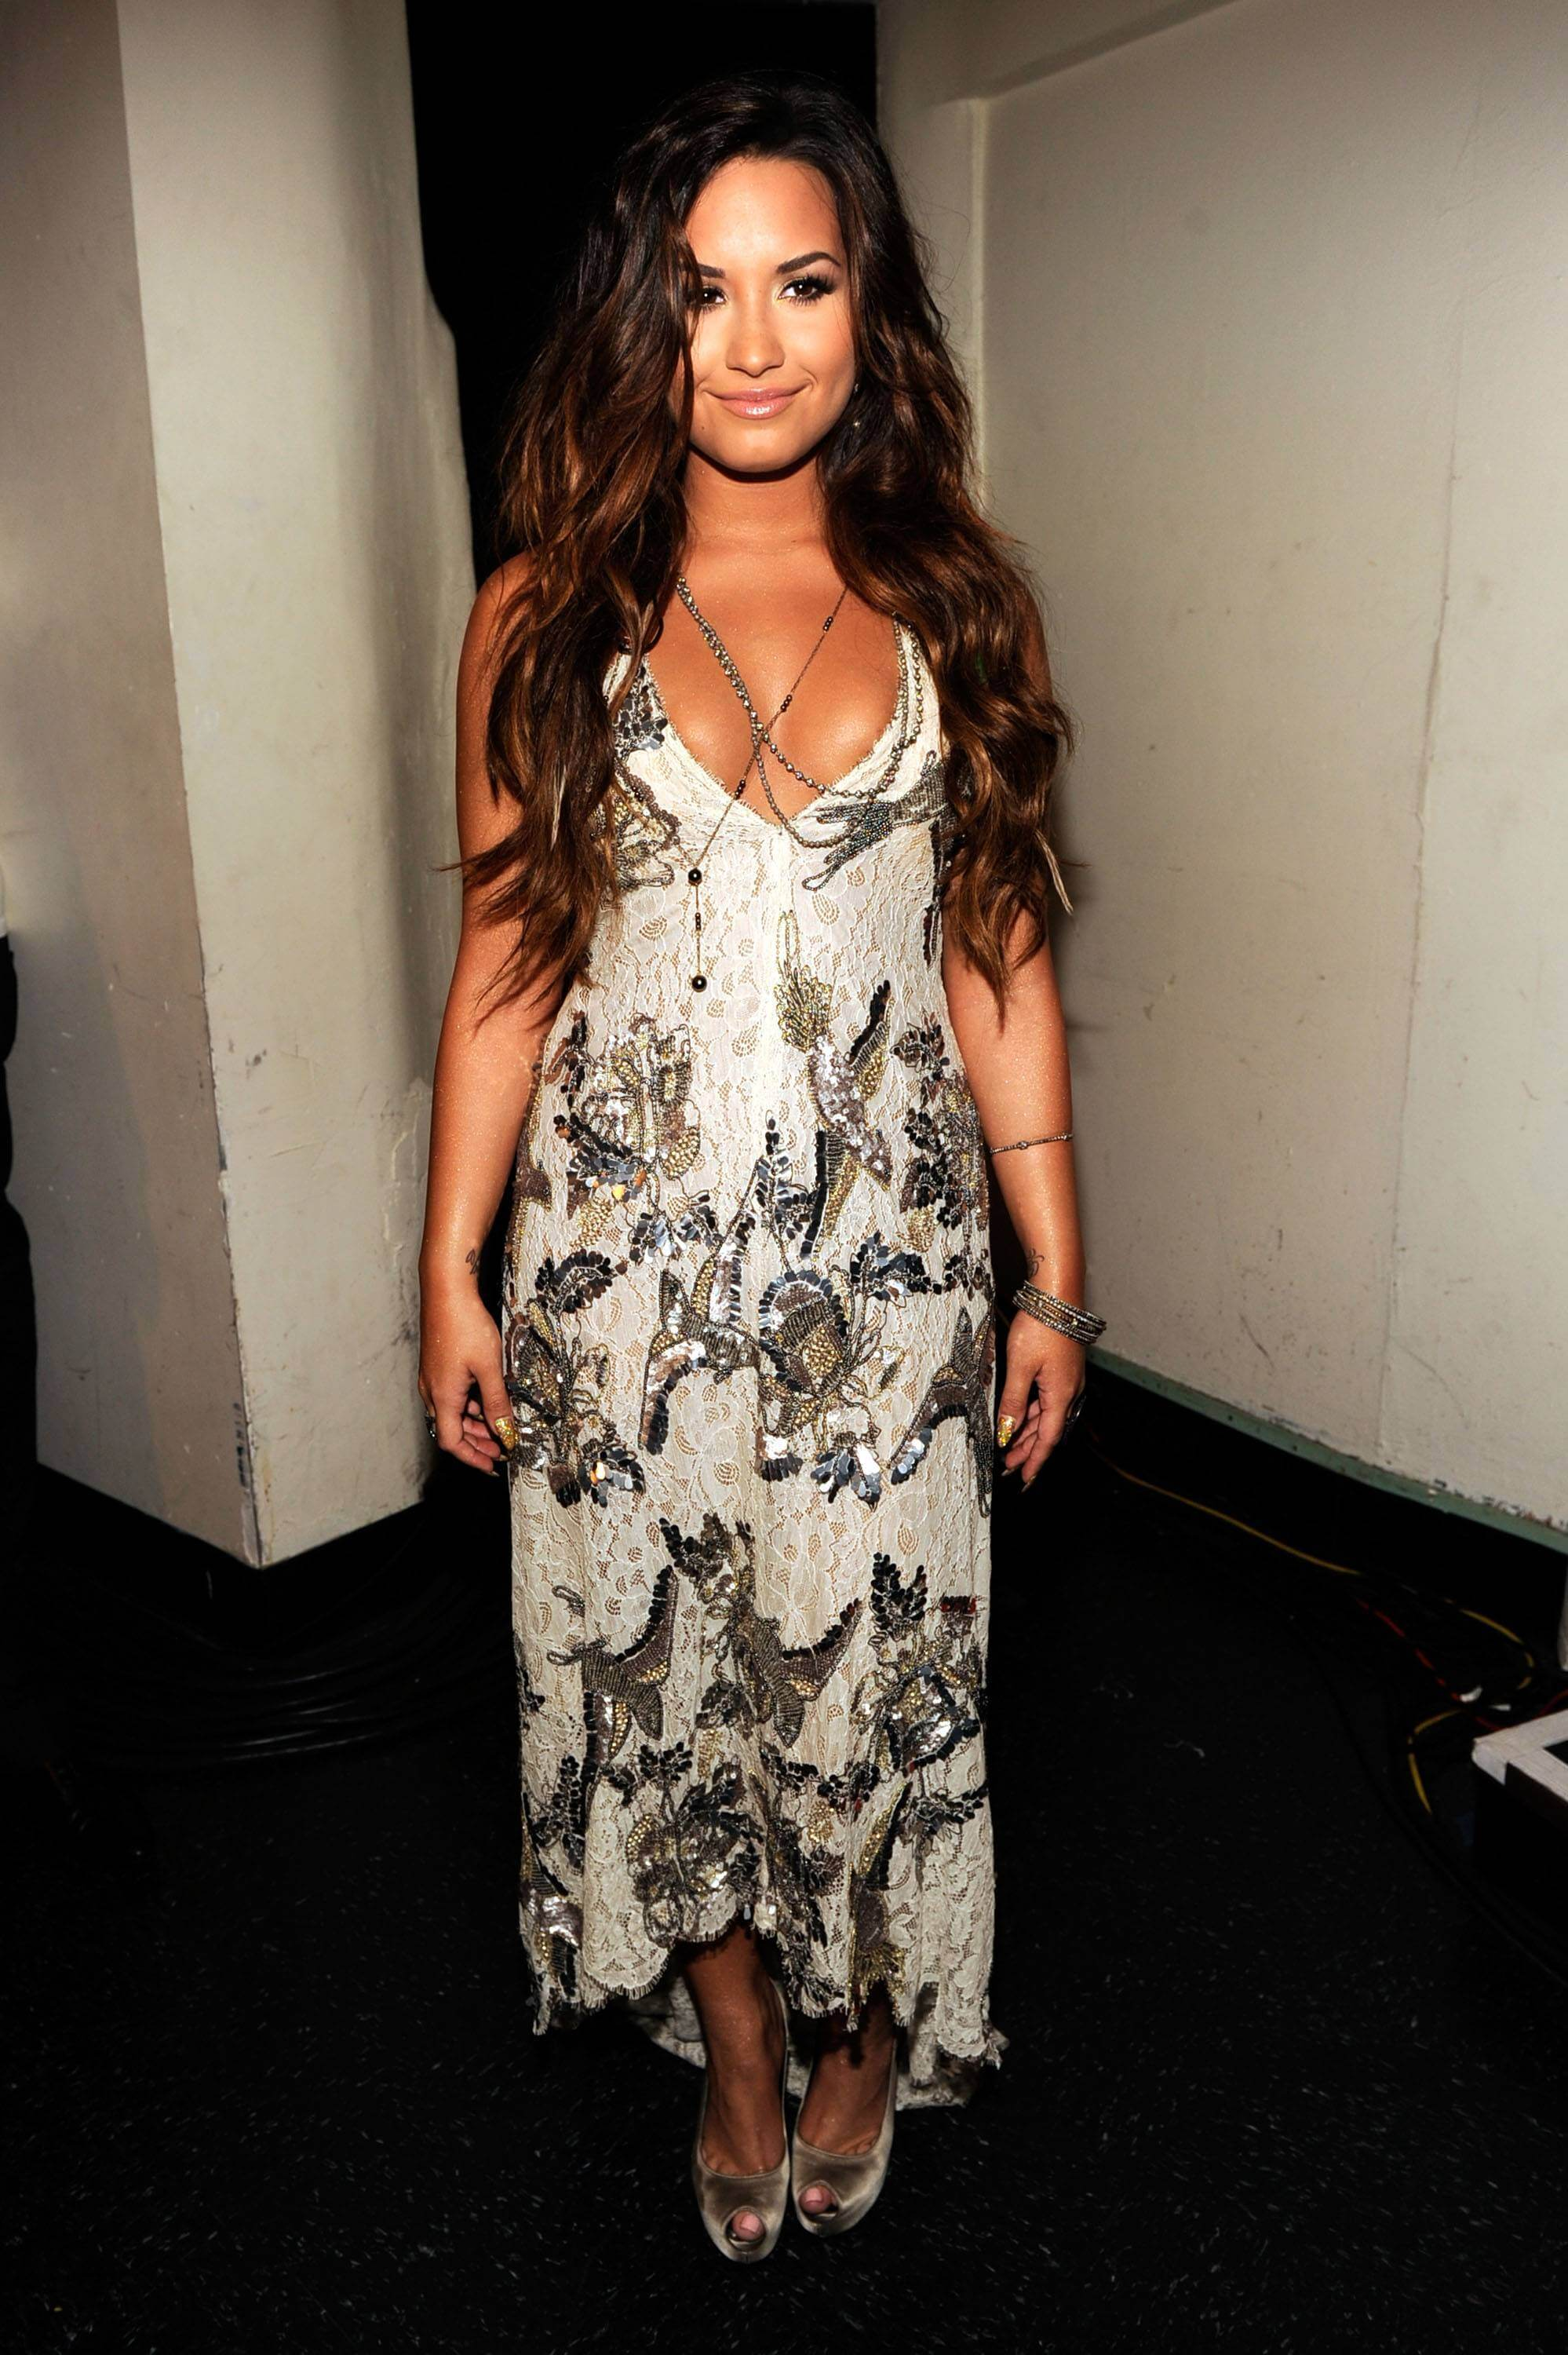 Demi Lovato hot cleavages pics